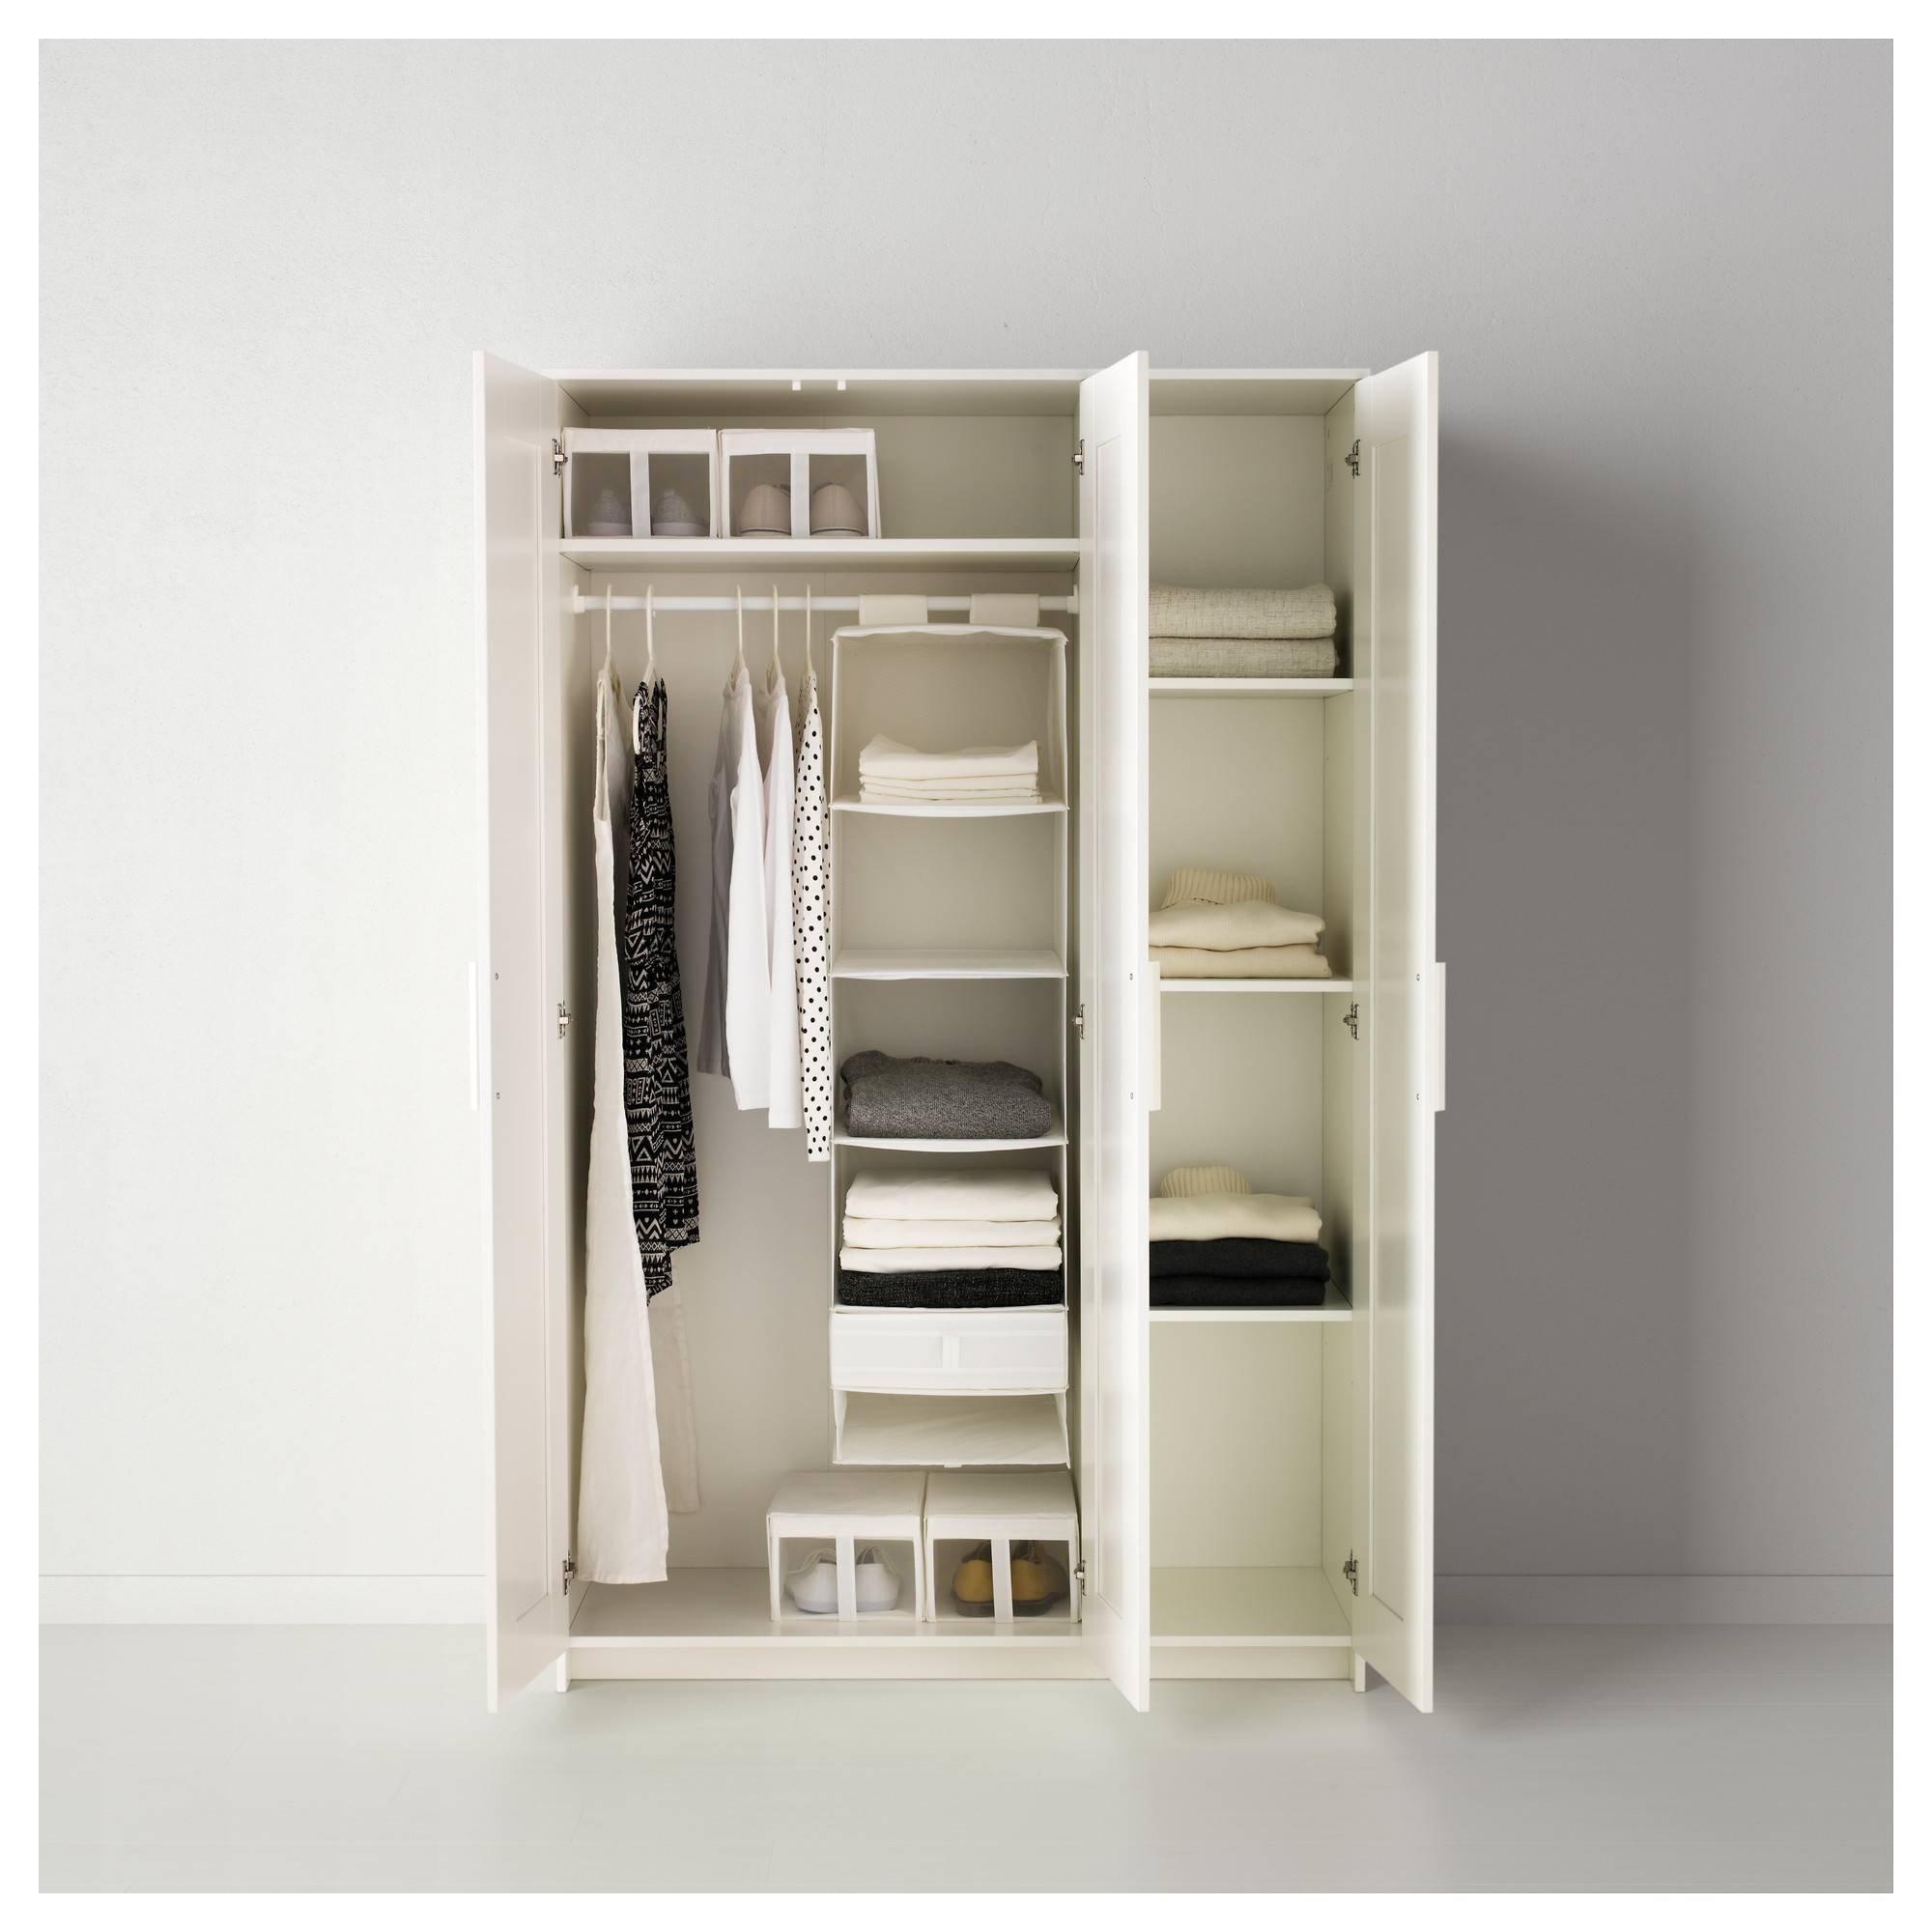 Brimnes Wardrobe With 3 Doors - White - Ikea inside White 3 Door Wardrobes With Drawers (Image 2 of 15)